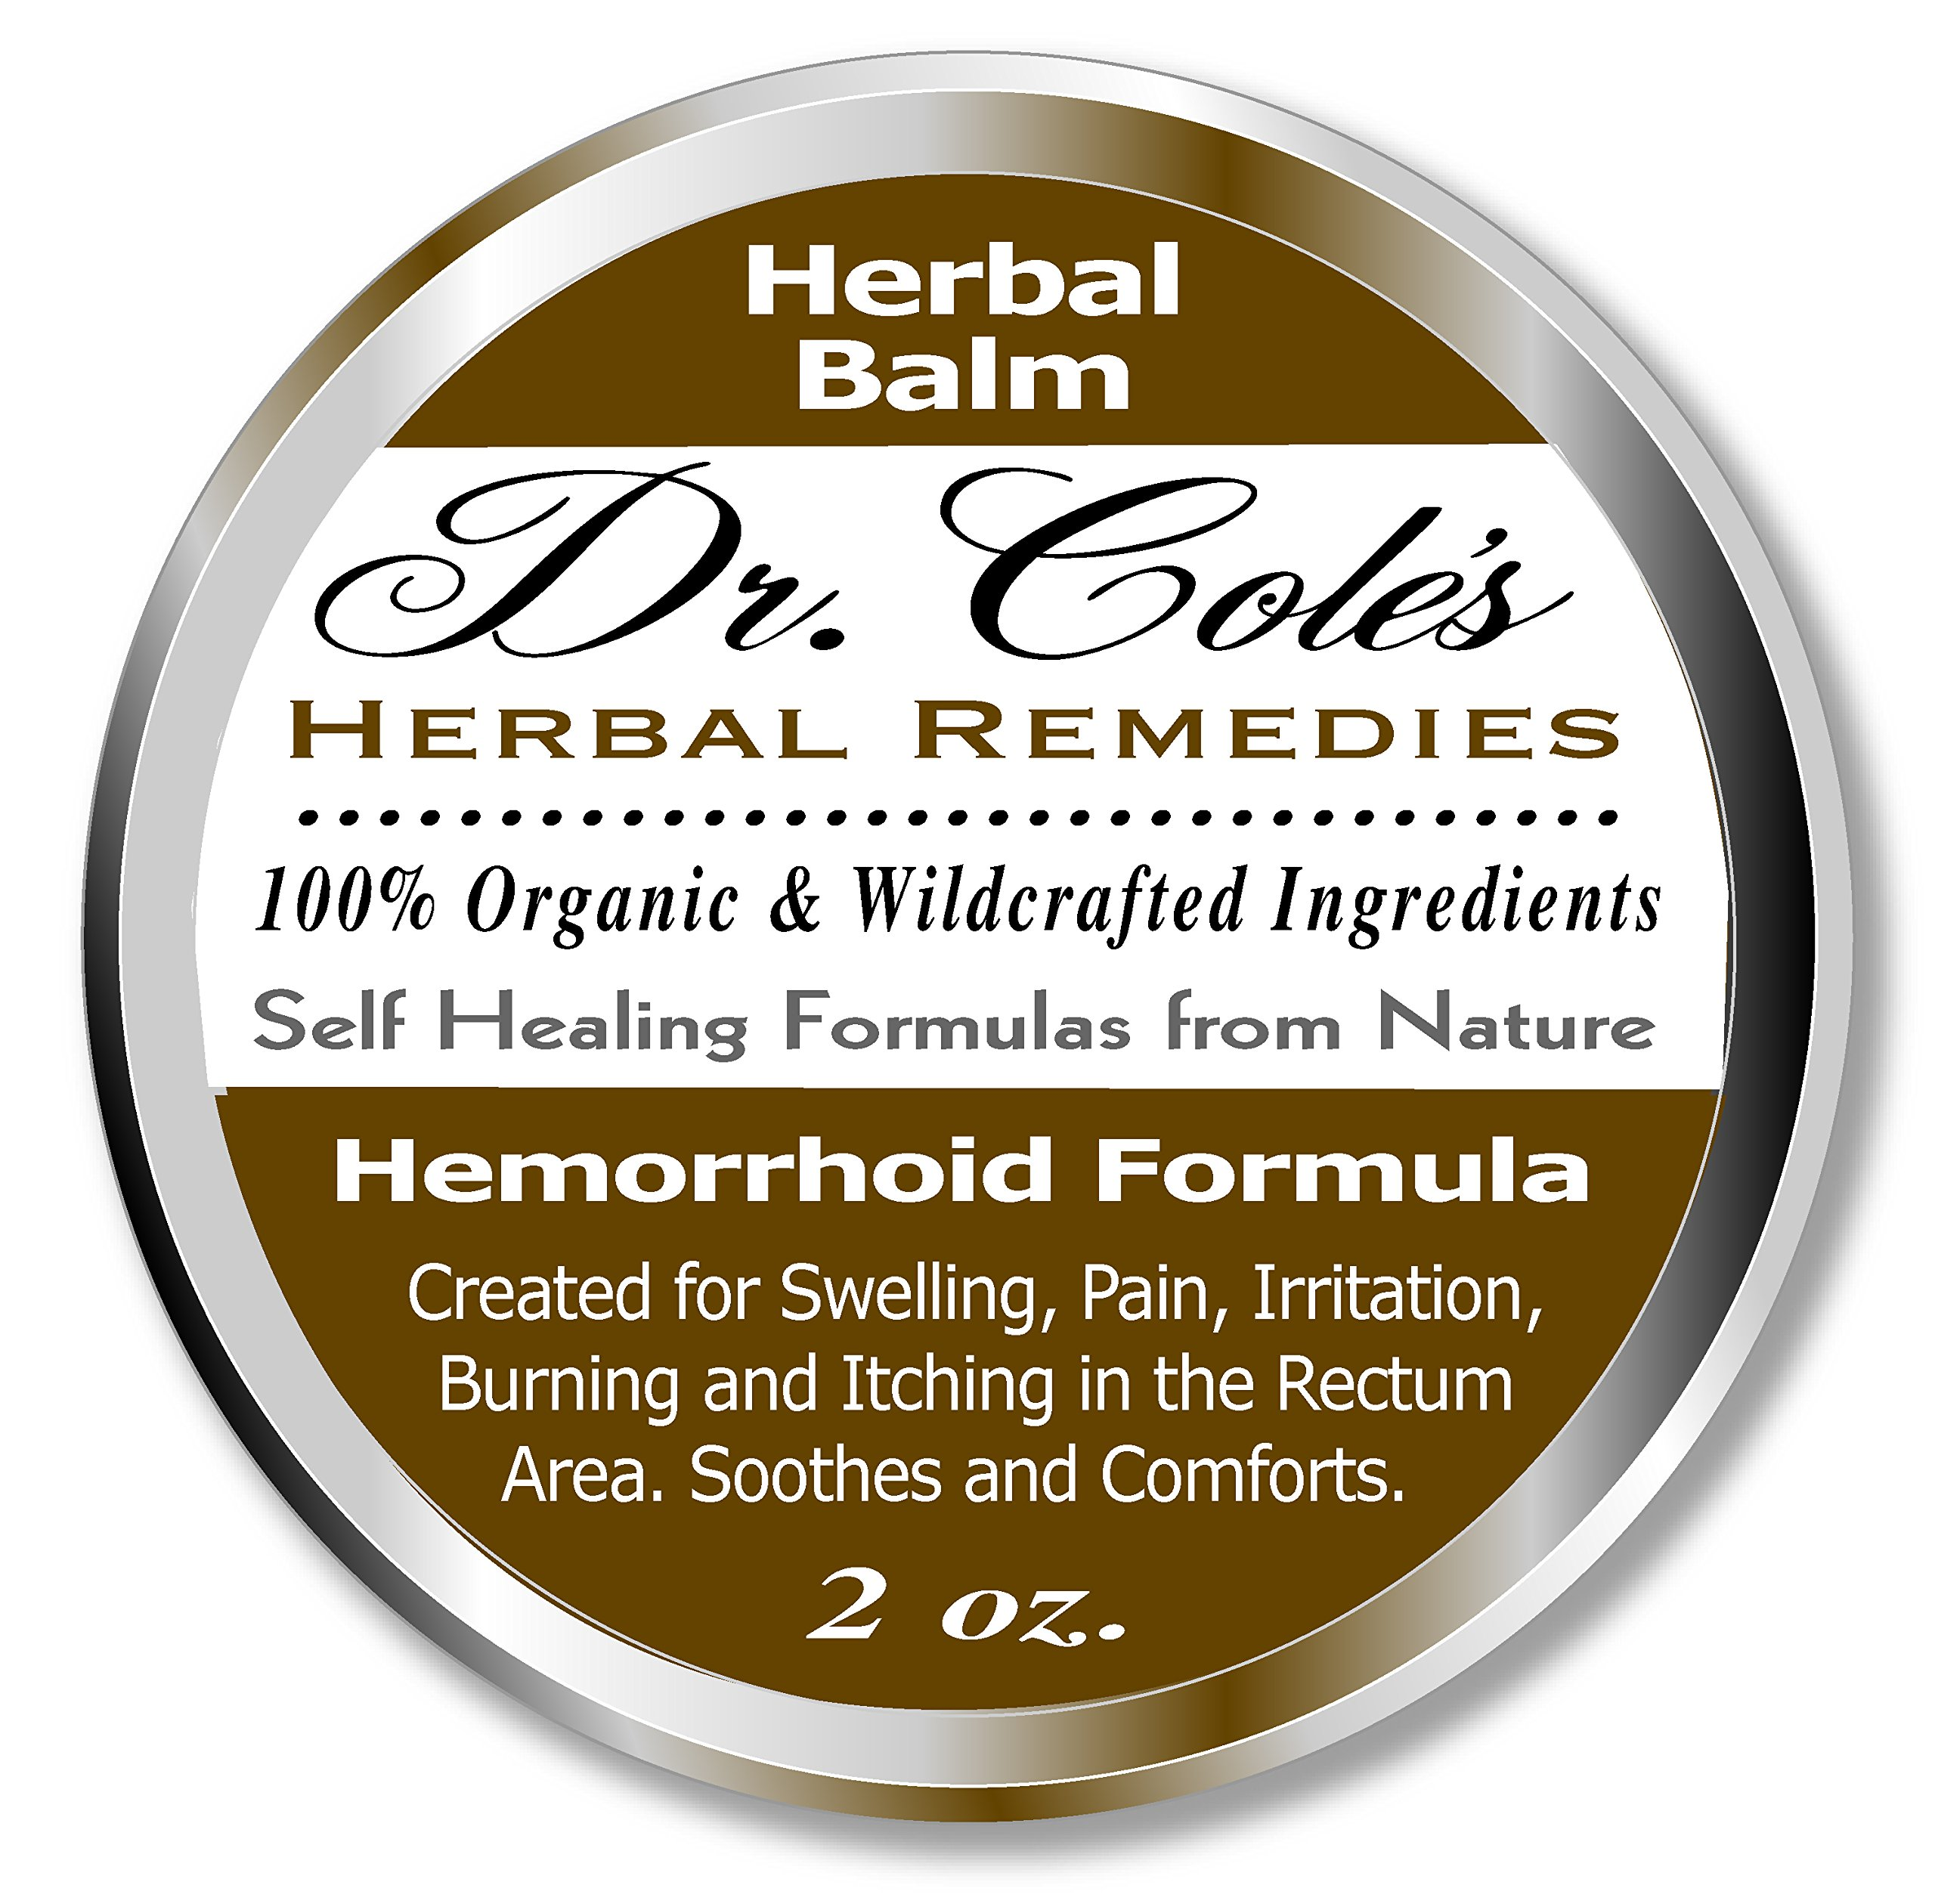 Dr. Cole's Hemorrhoid Treatment. Organic Herbal Ointment for Hemorrhoid Relief. Natural Remedy for all types of Internal and External, Hemorrhoids. Soothes Itching, Swelling & Pain. Safe for all ages. by Dr. Cole's Herbal Remedies